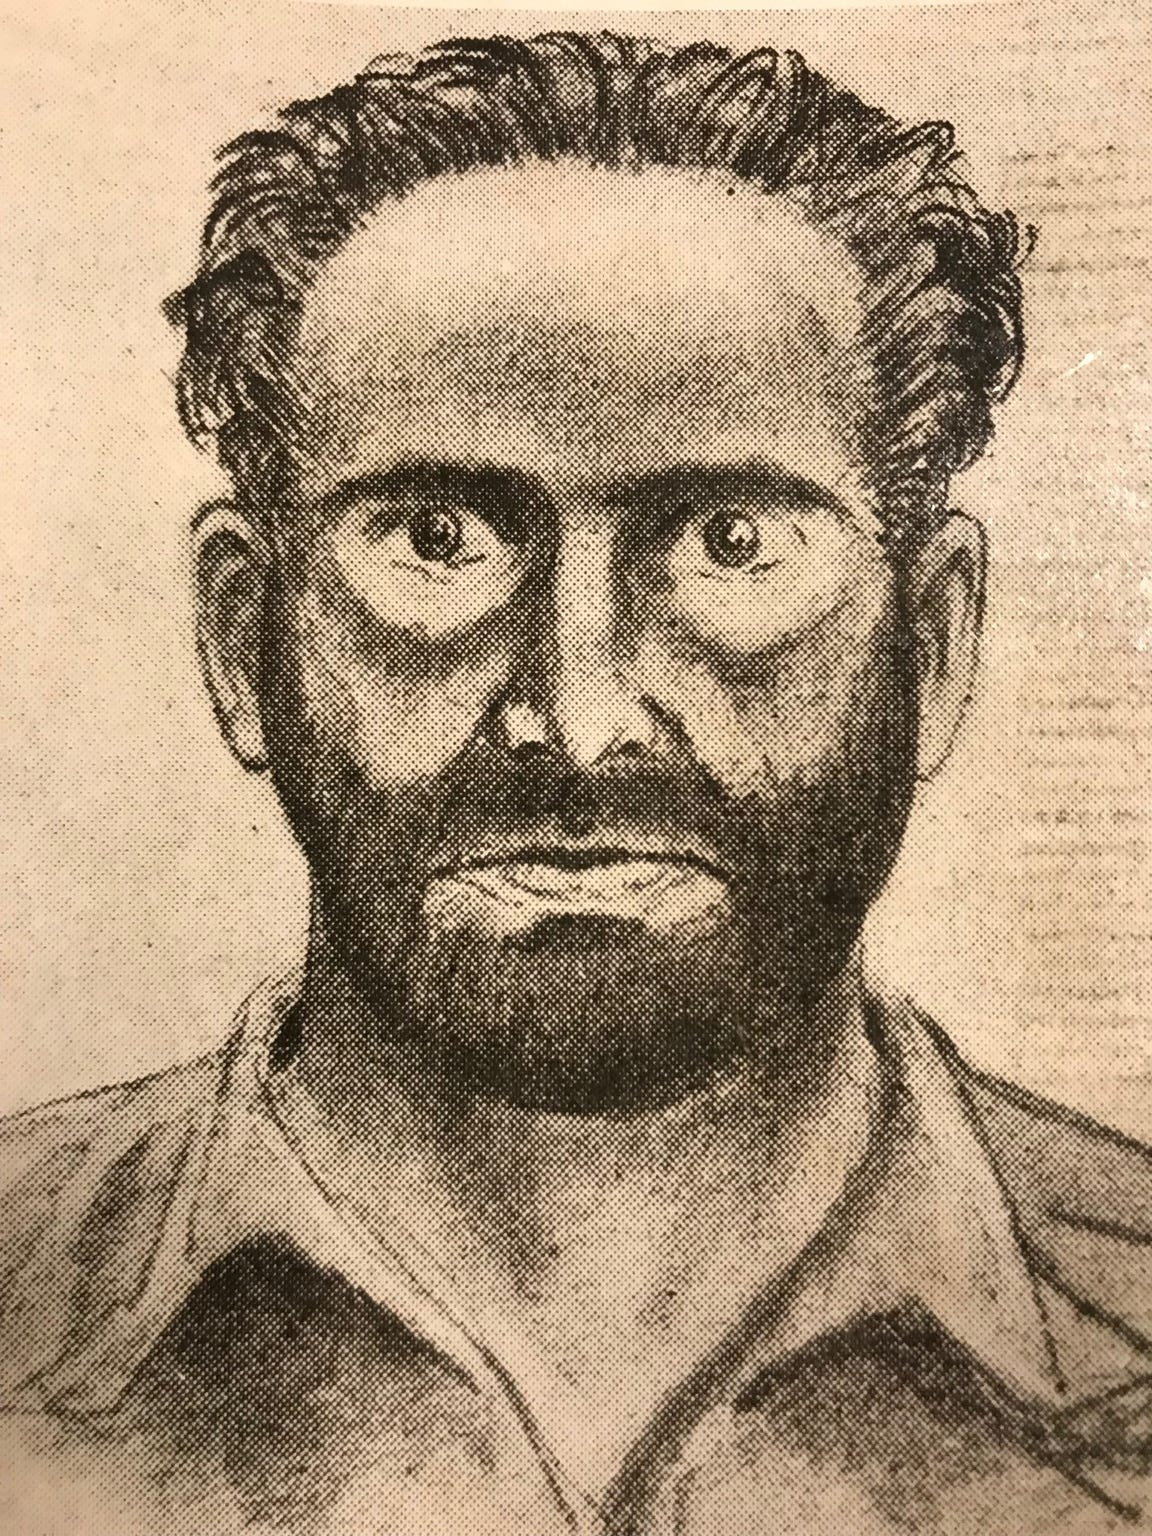 A sketch of Leslie Irvin, done after the Dec. 23, 1955 murder of W. Wesley Kerr